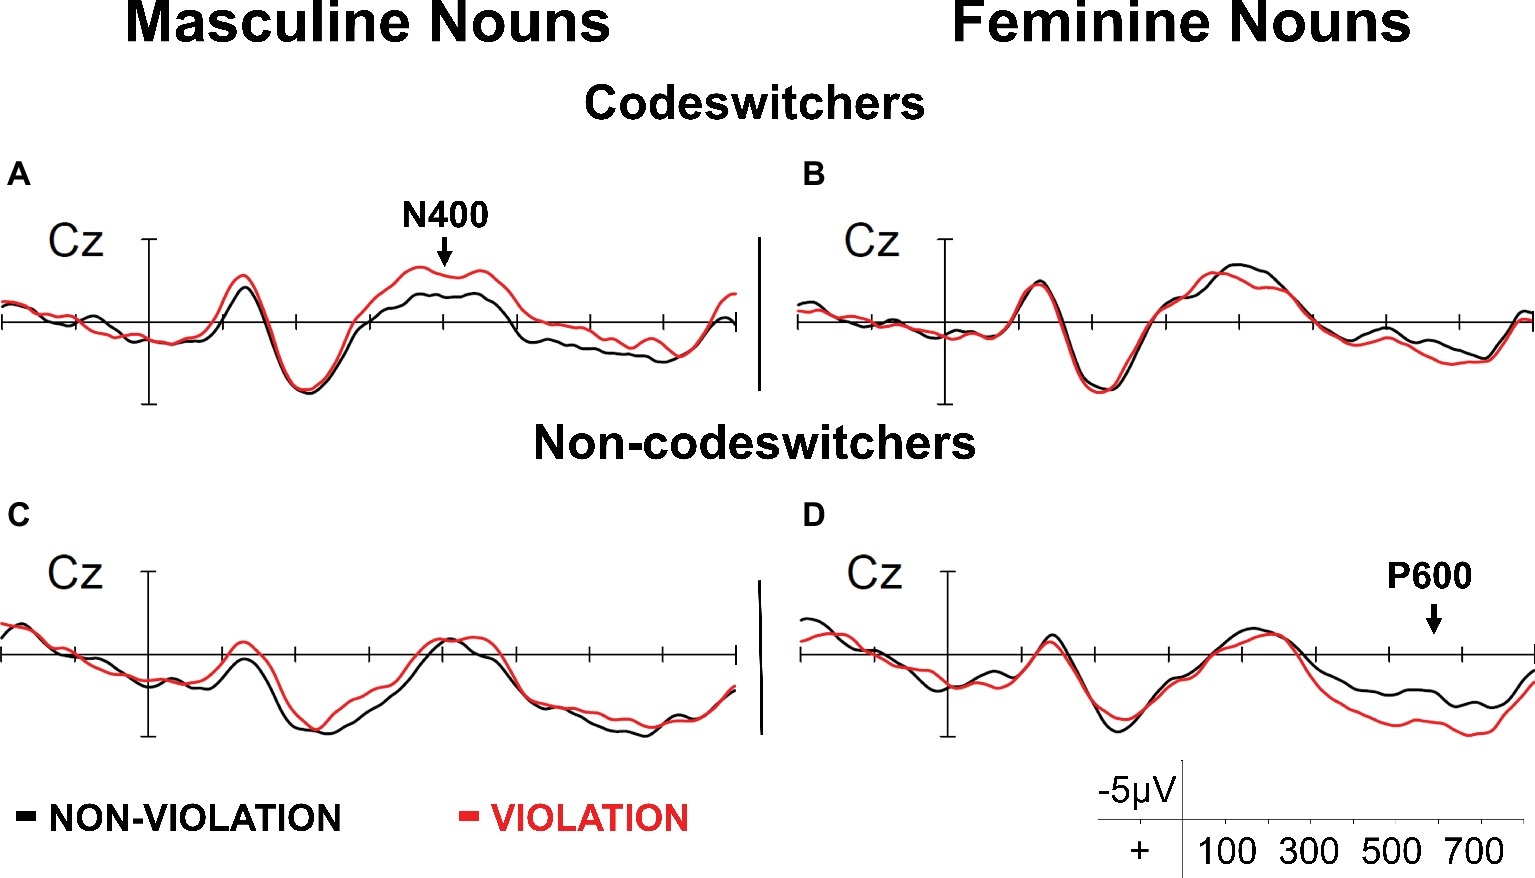 Frontiers | Revisiting Masculine and Feminine Grammatical Gender in